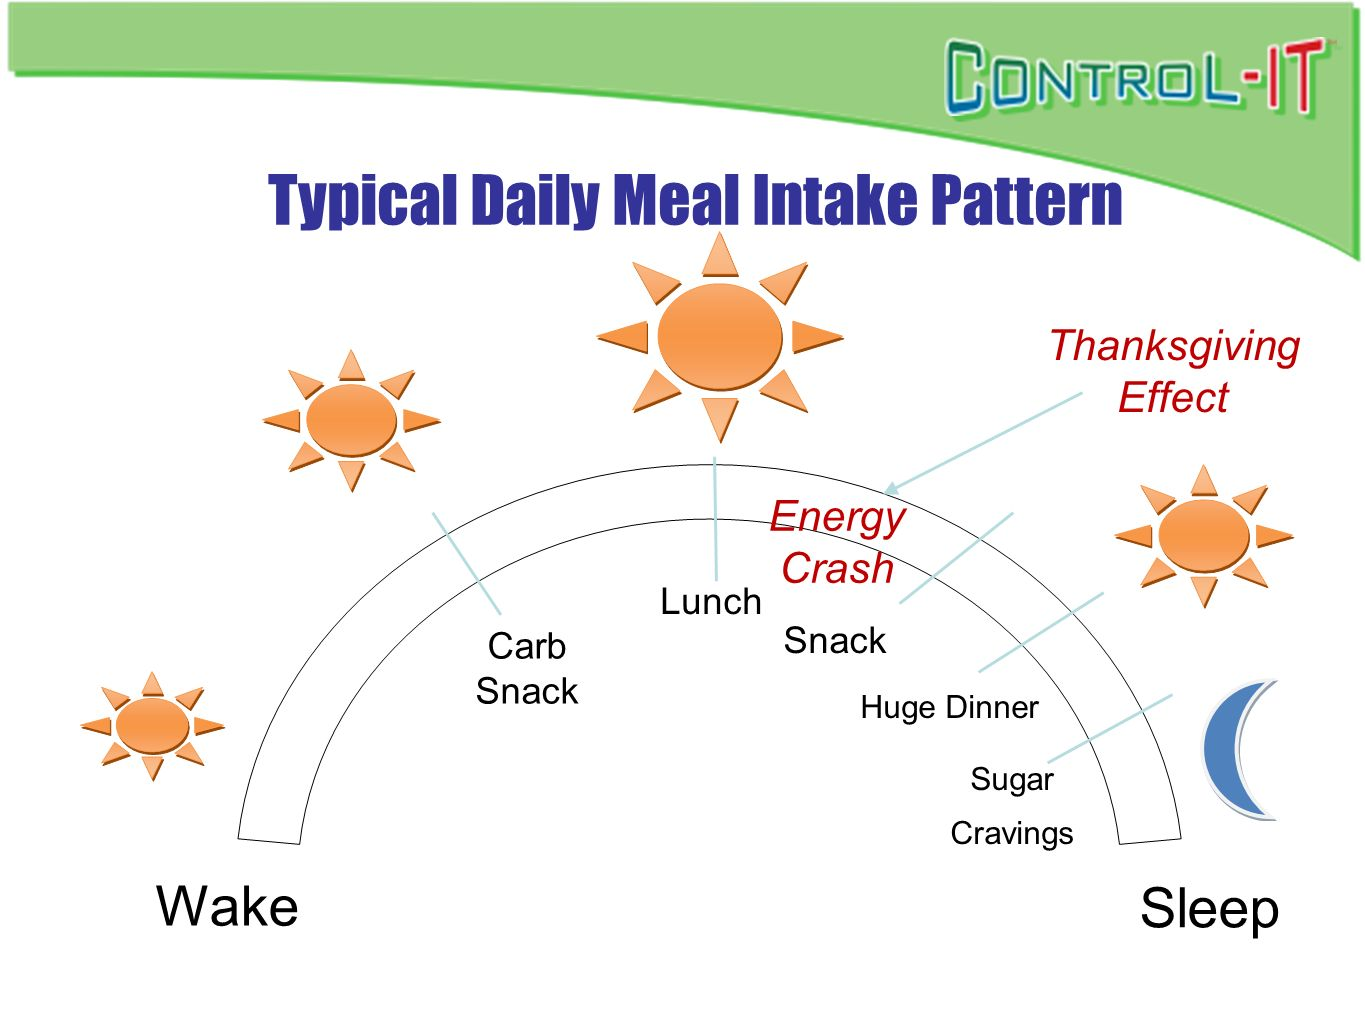 Typical Daily Meal Intake Pattern Carb Snack Lunch Huge Dinner Wake Sleep Sugar Cravings Energy Crash Snack Thanksgiving Effect